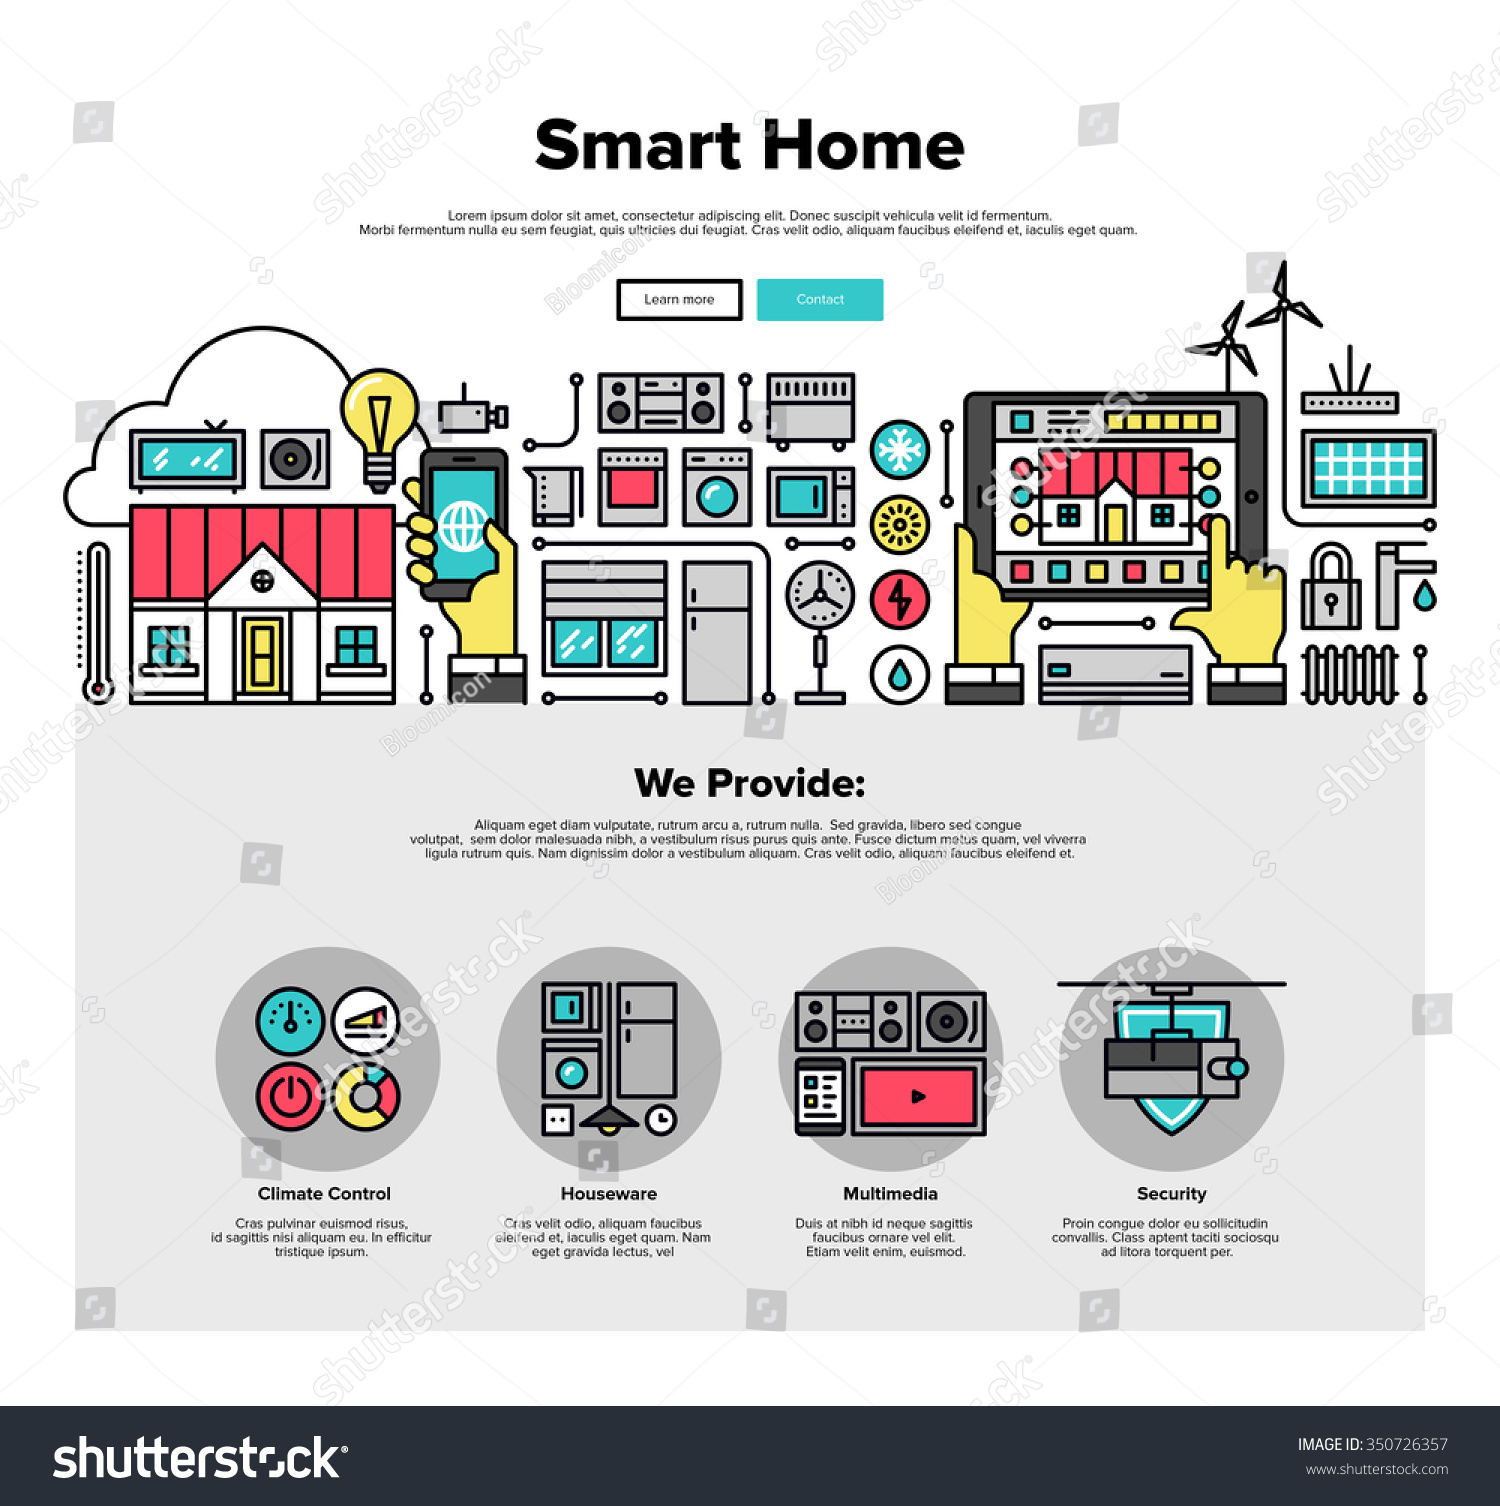 stock-vector-one-page-web-design-template-with-thin-line-icons-of-smart-home-automation-system-smart-house-350726357.jpg